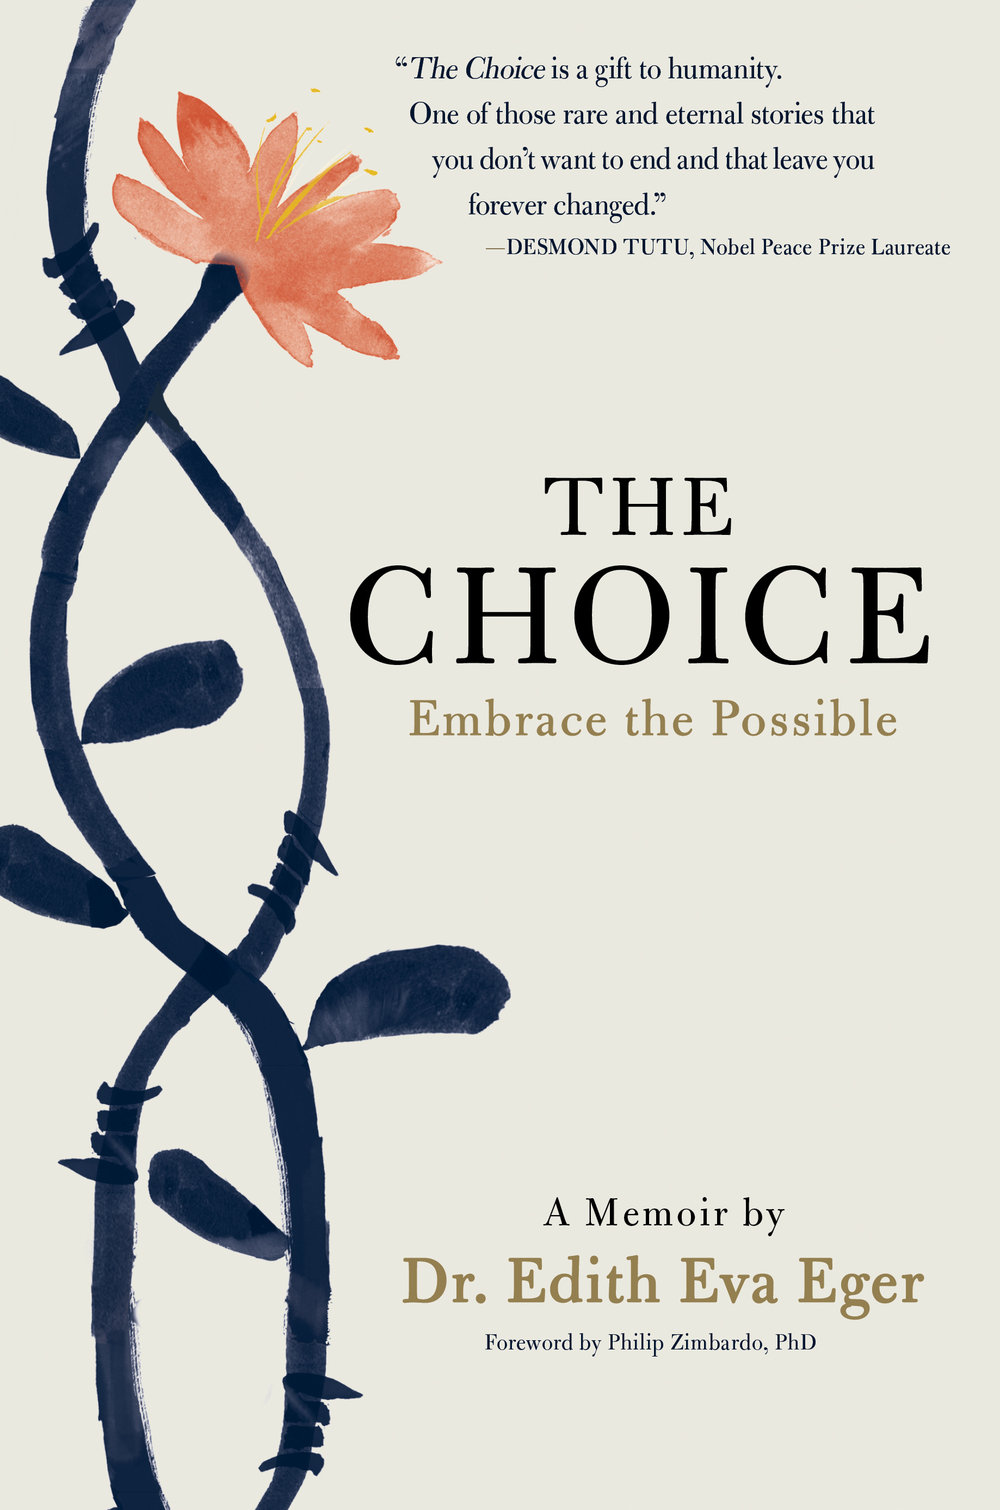 the choice by edith eva eger.jpeg